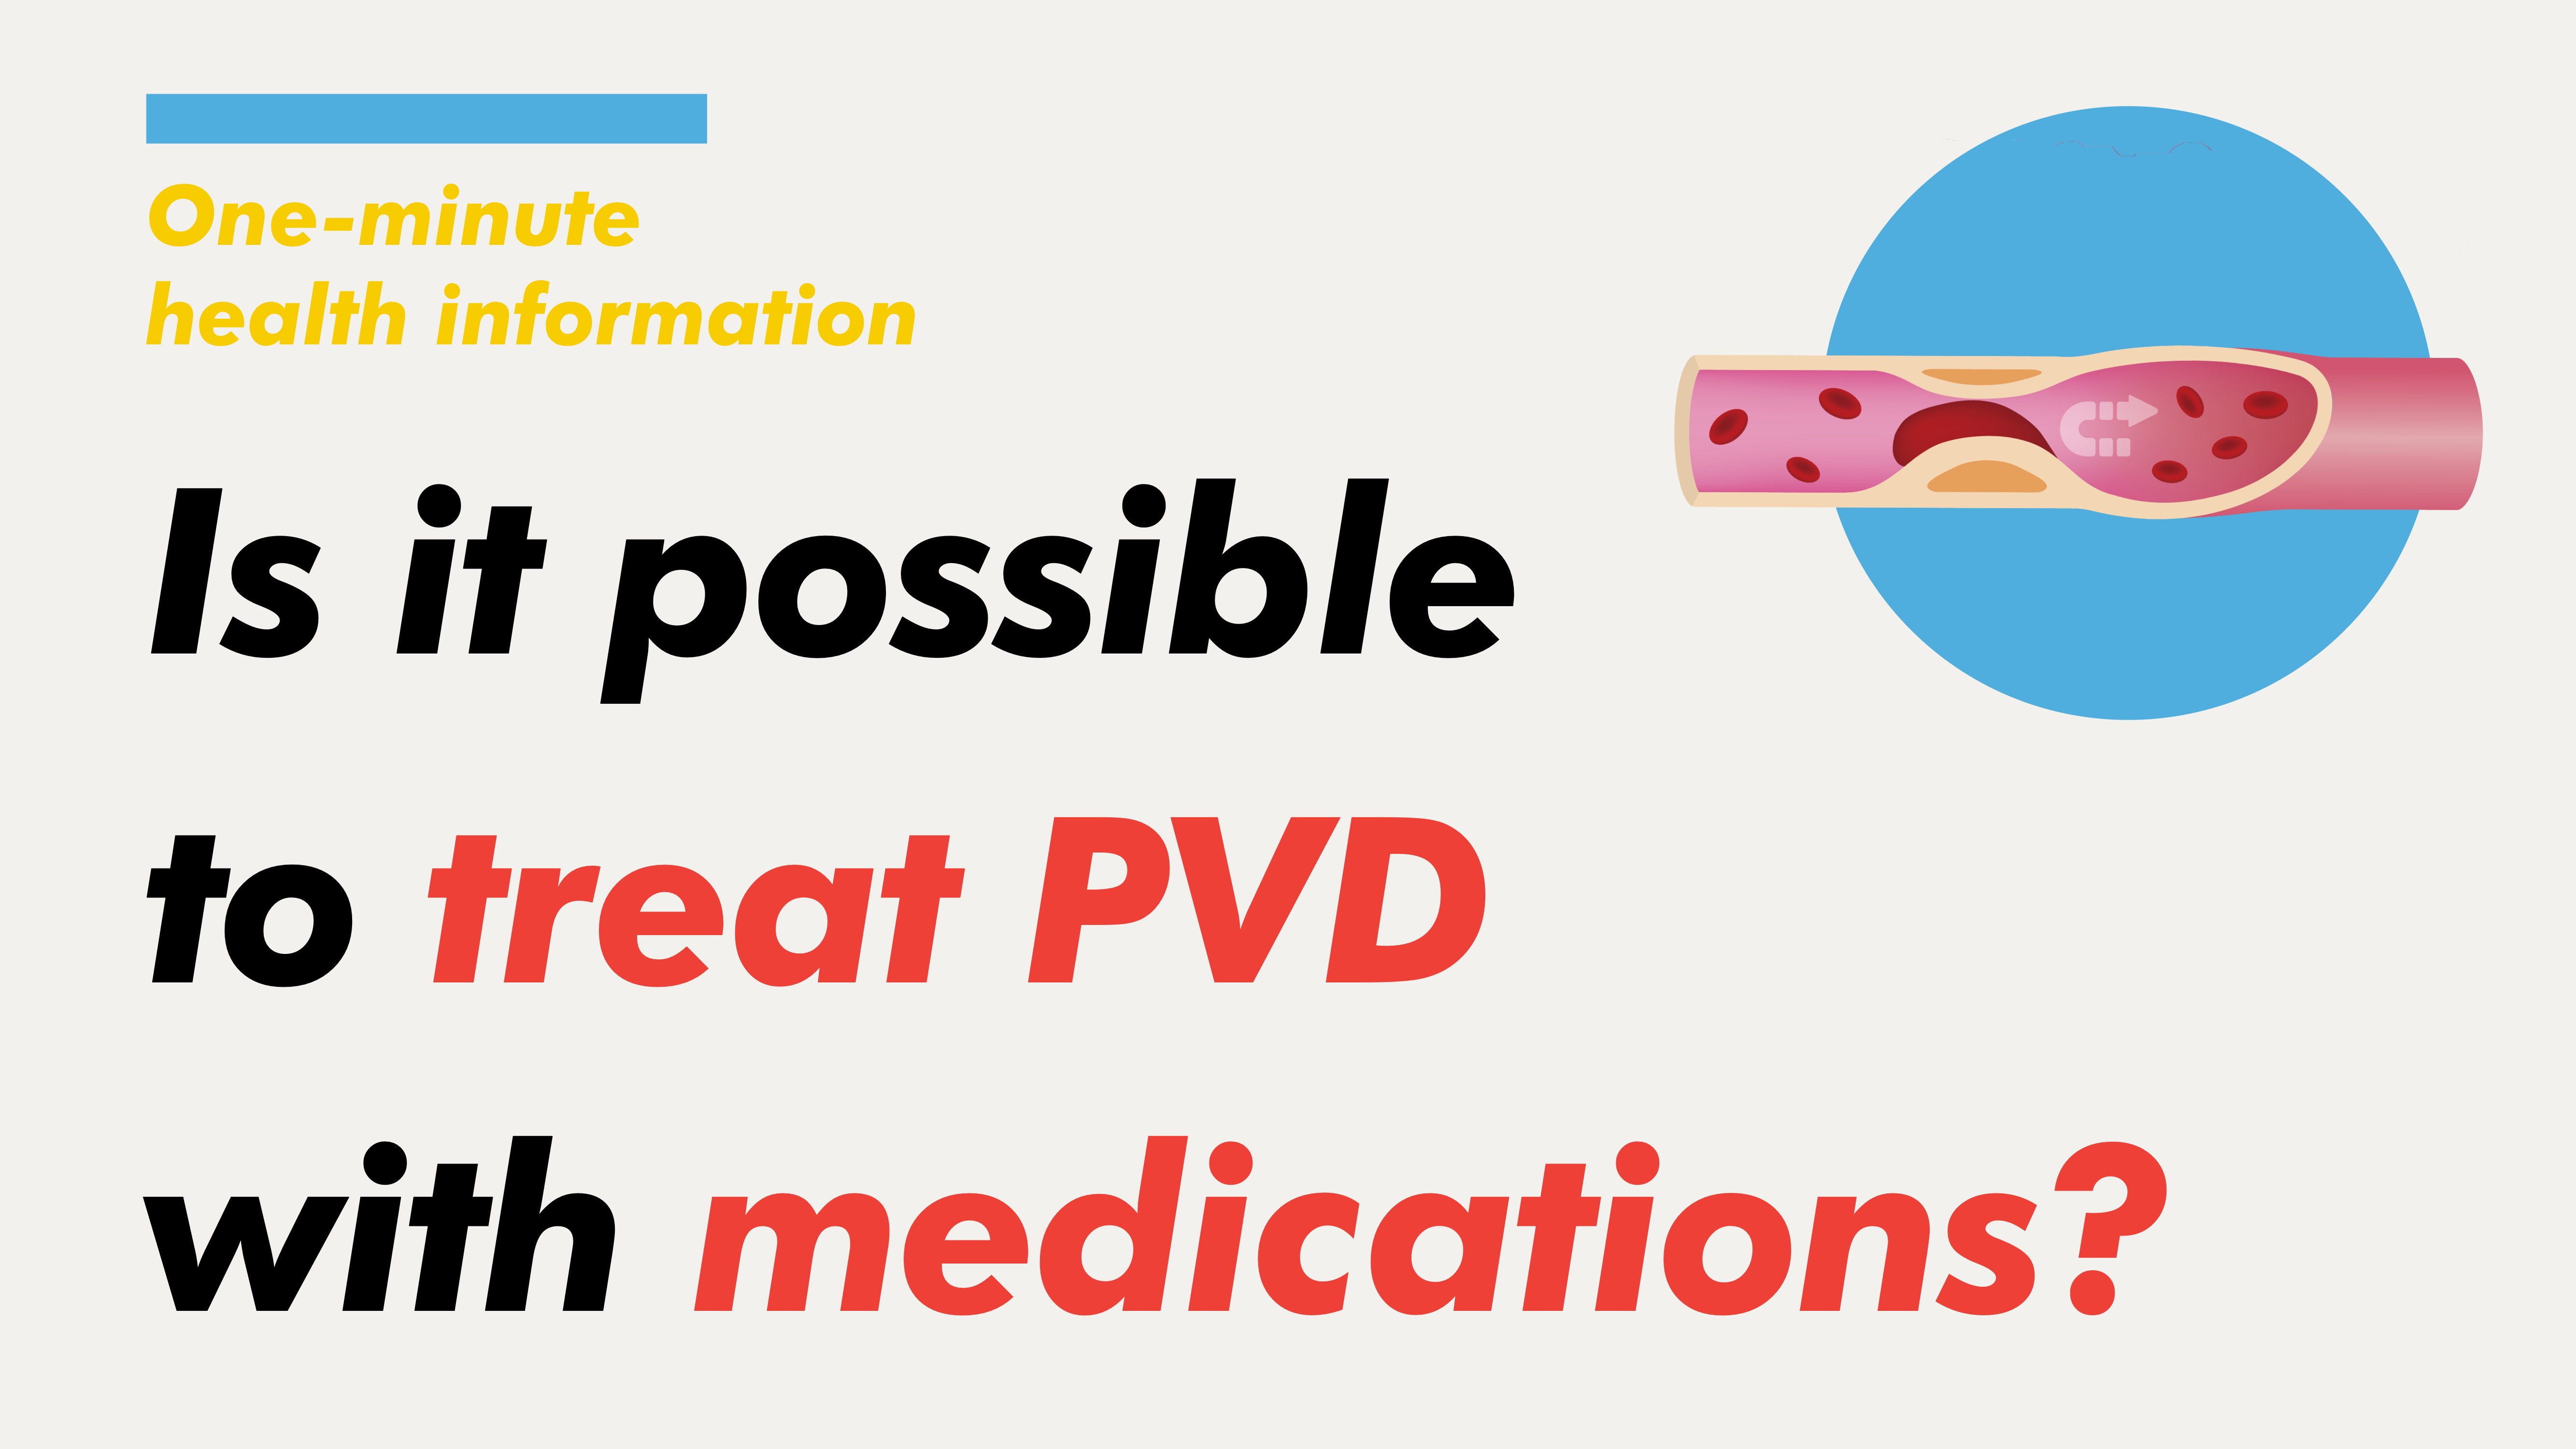 [Health Information] Is it possible to treat PVD with medications if it's not severe?